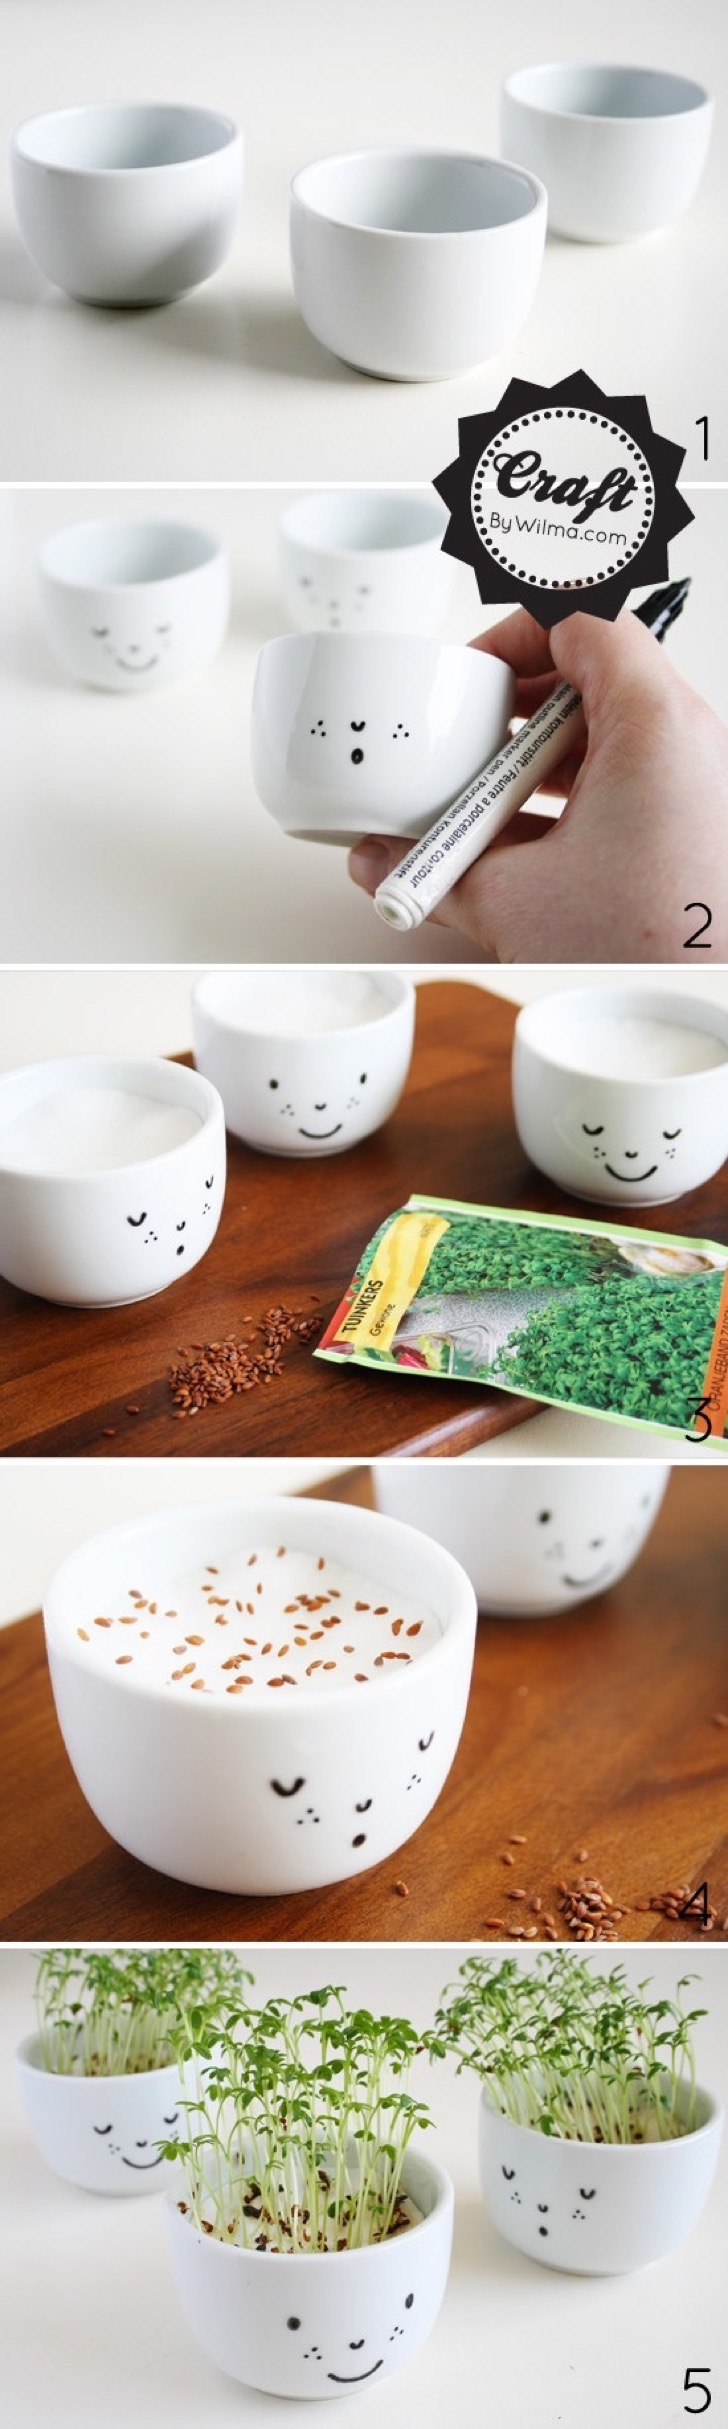 cute-cress-cups-with-a-face-diy